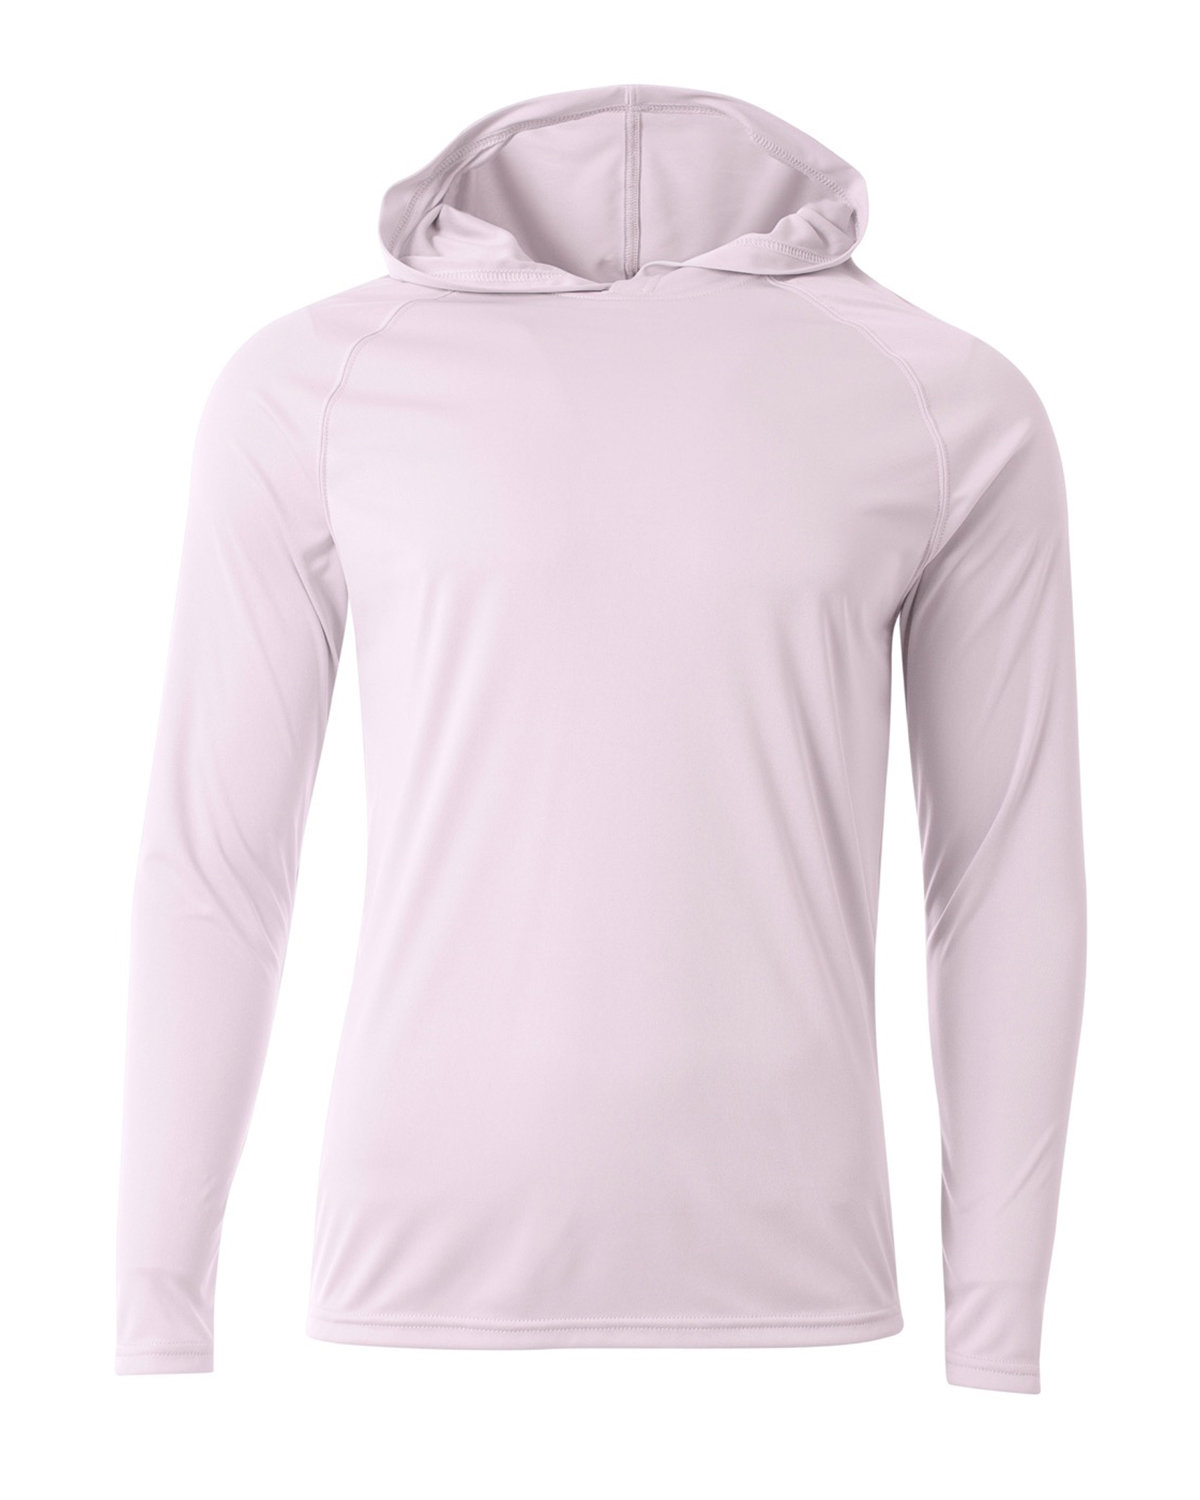 A4 Men's Cooling Performance Long-Sleeve Hooded T-shirt WHITE